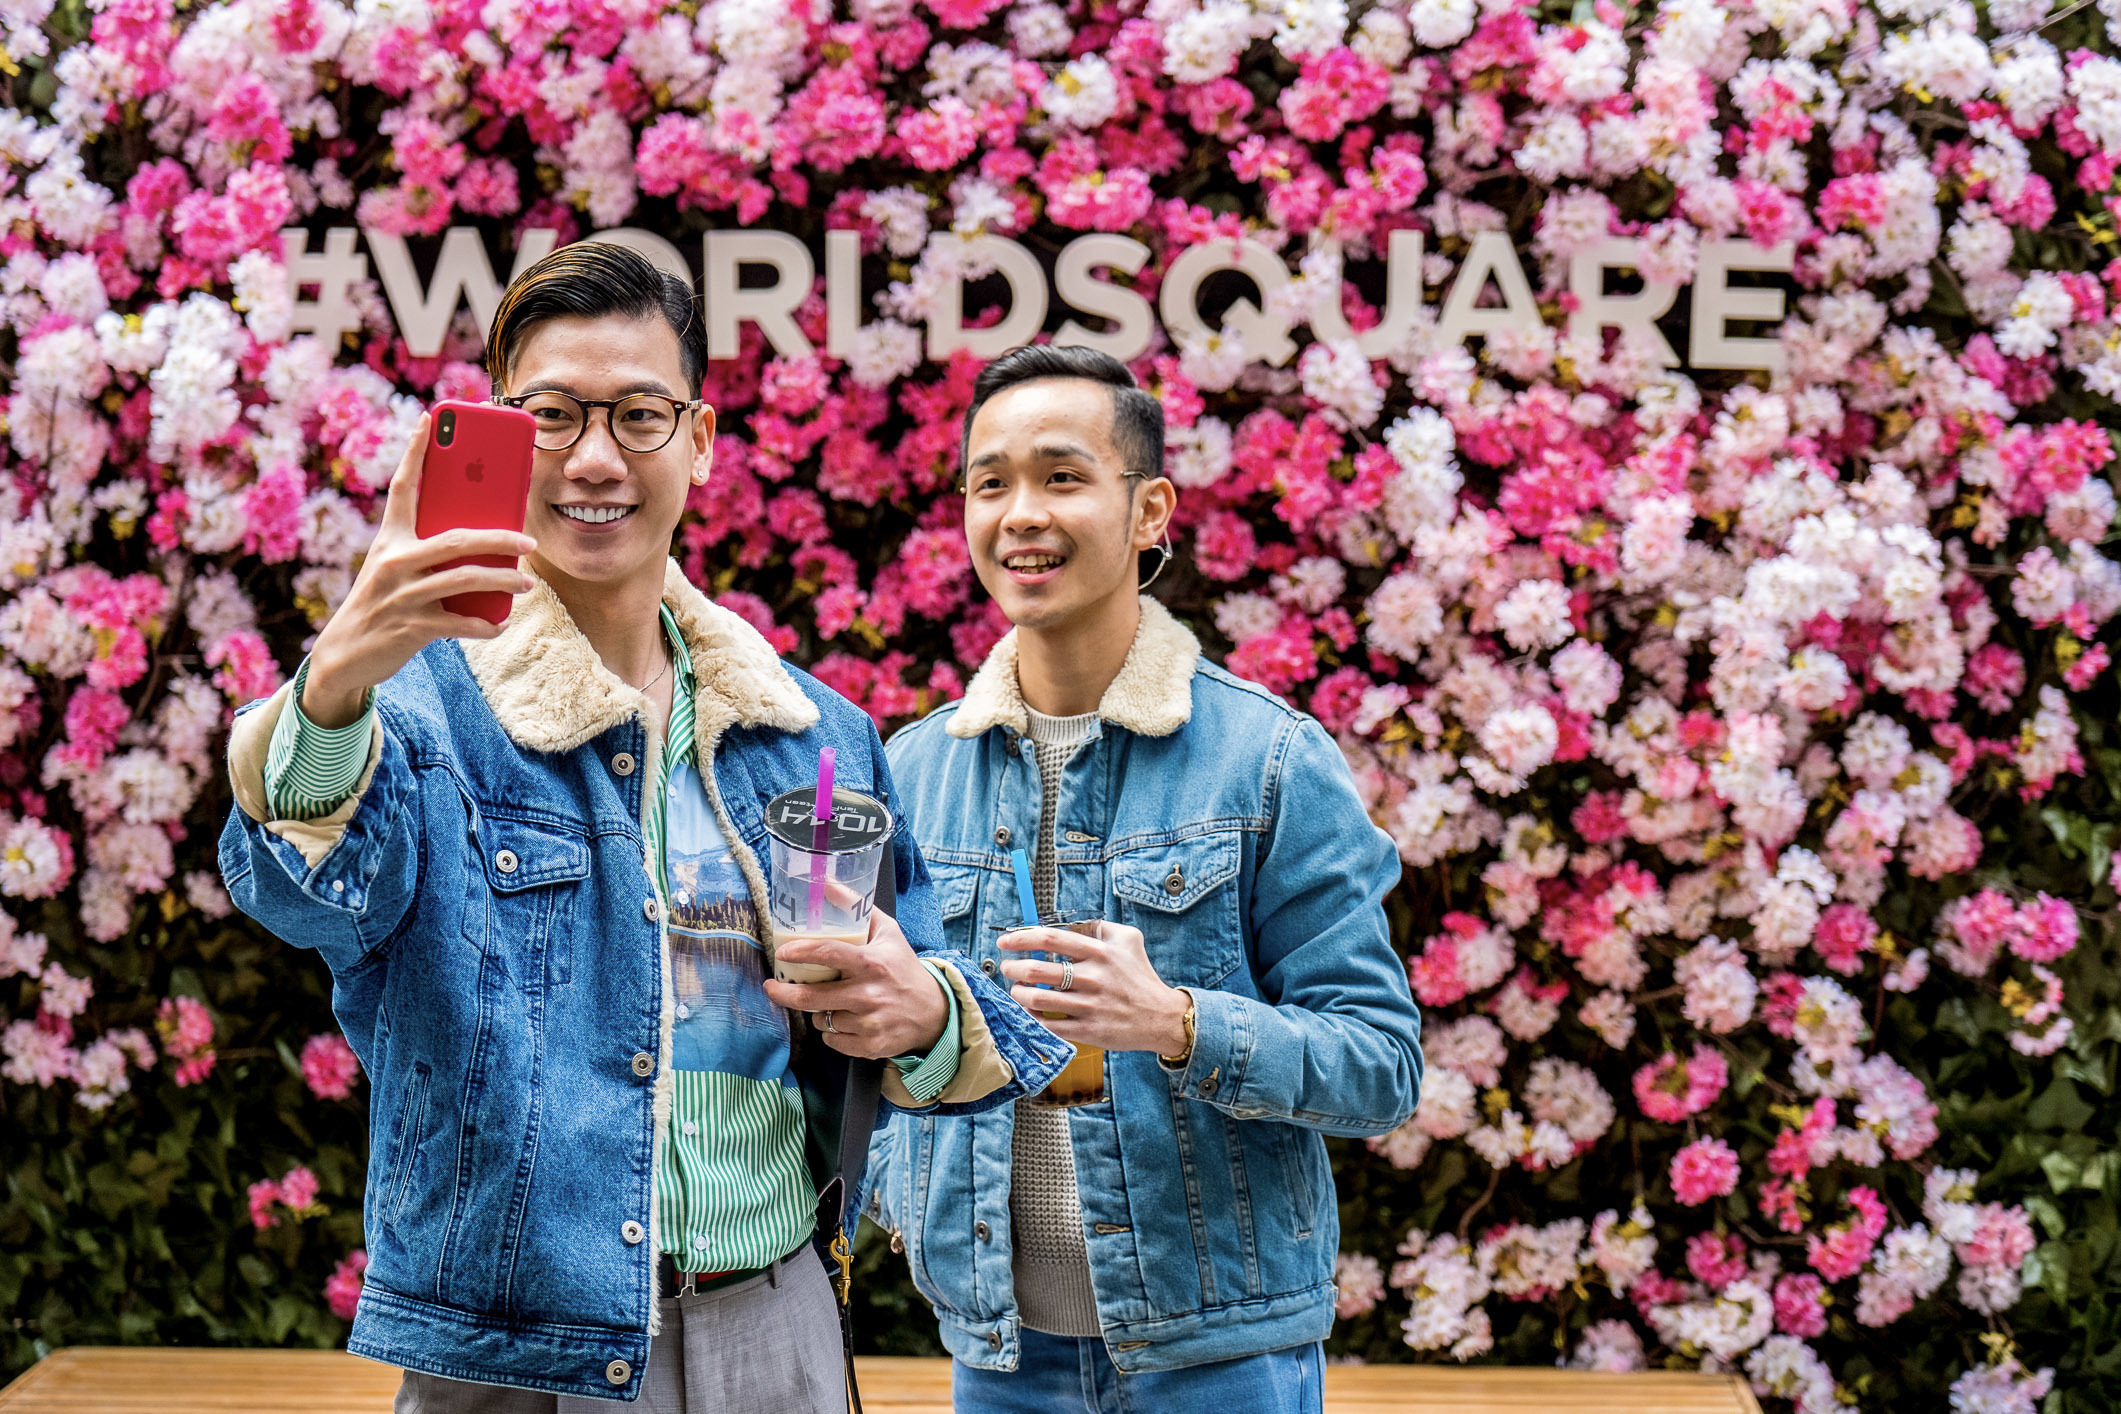 People talking selfies infront of flowers at World Square Cherry